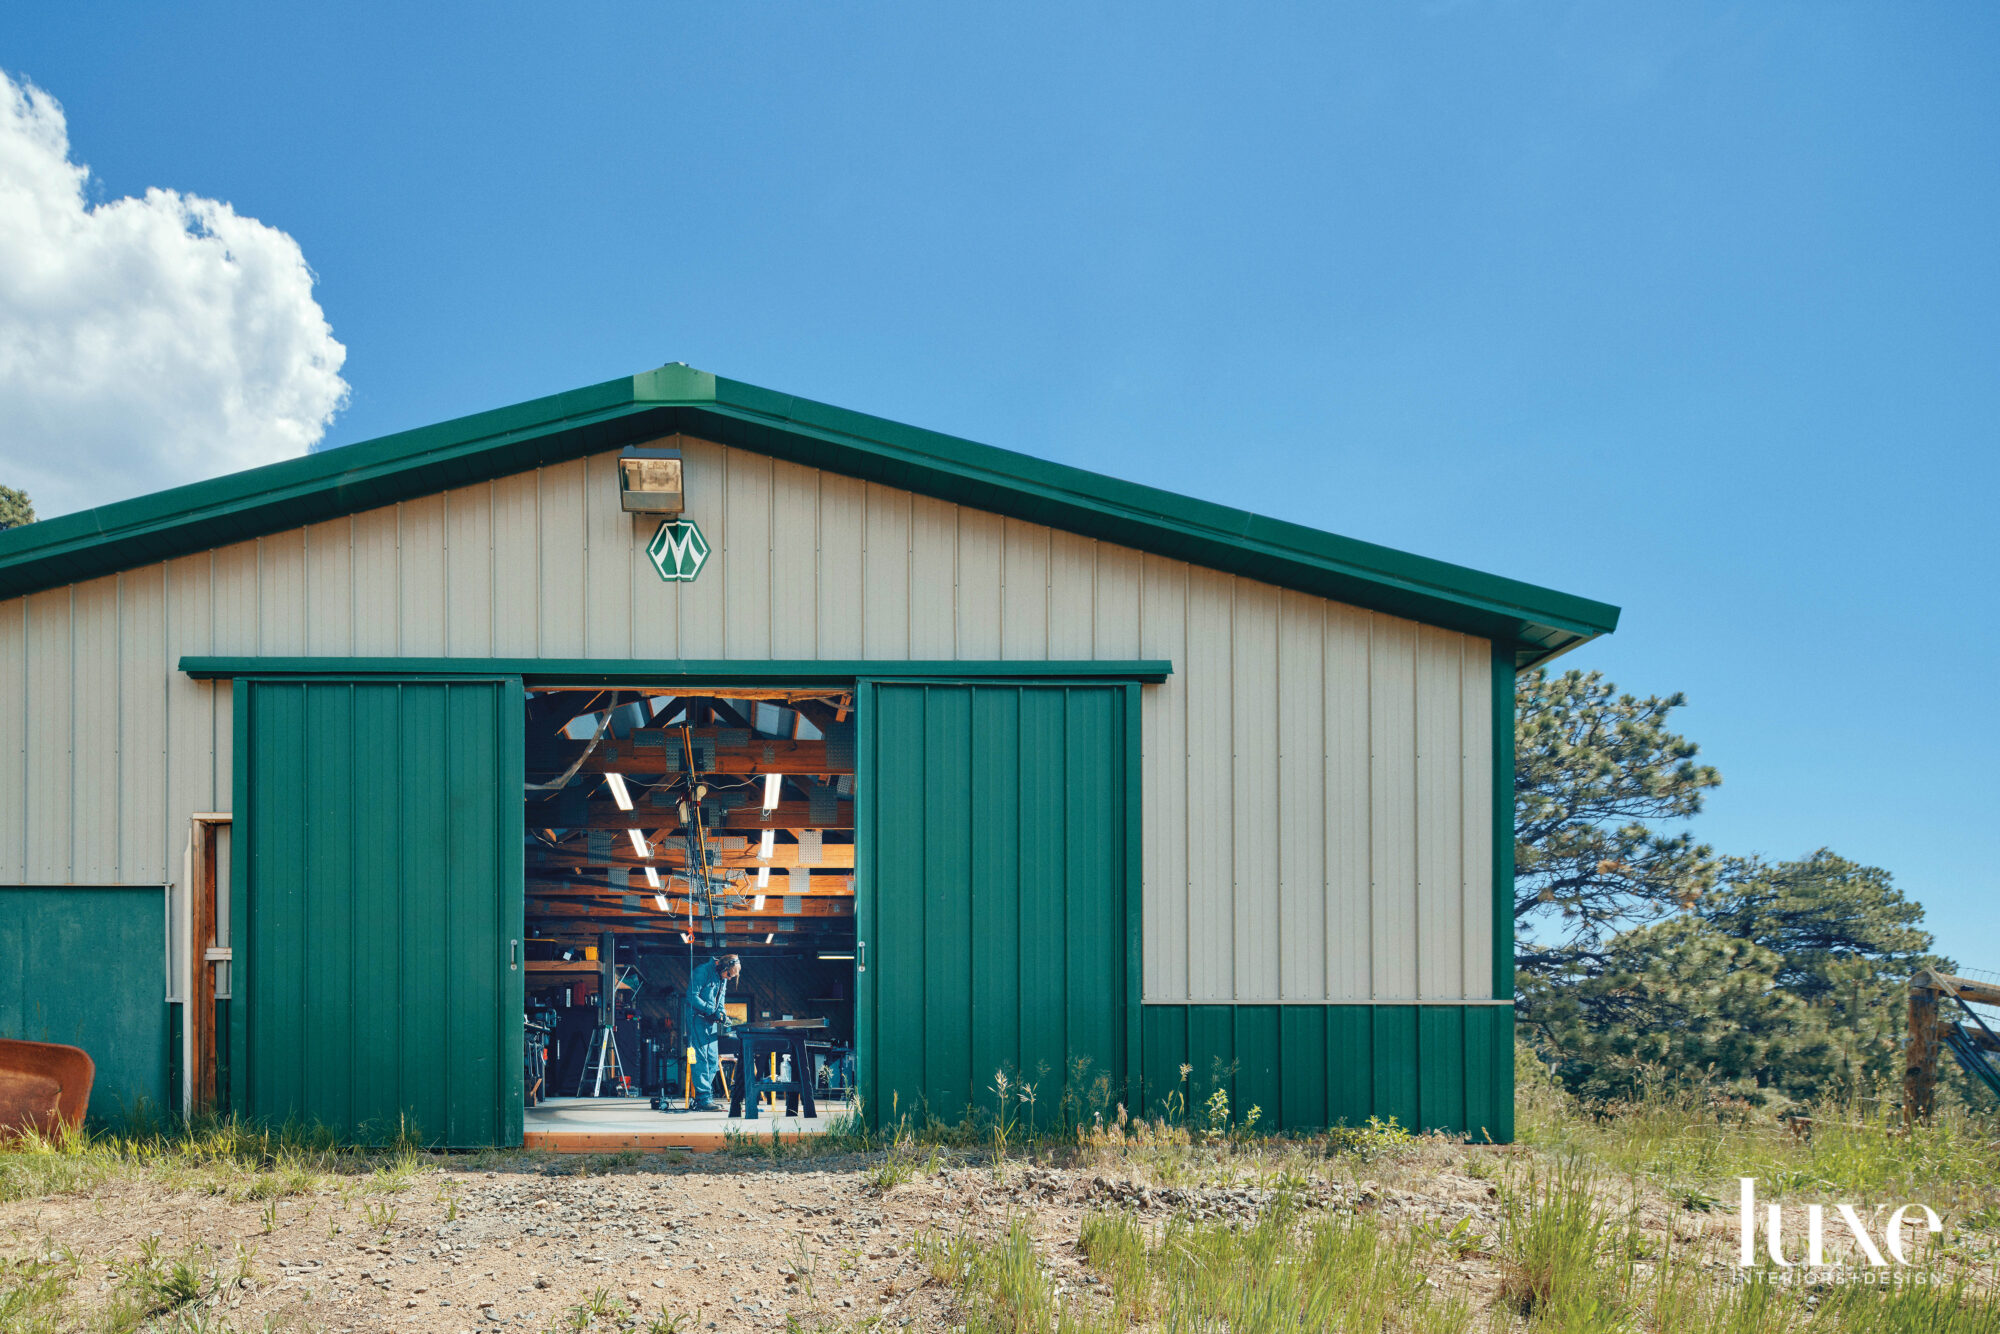 The exterior of one of the barns is cream and green colored.